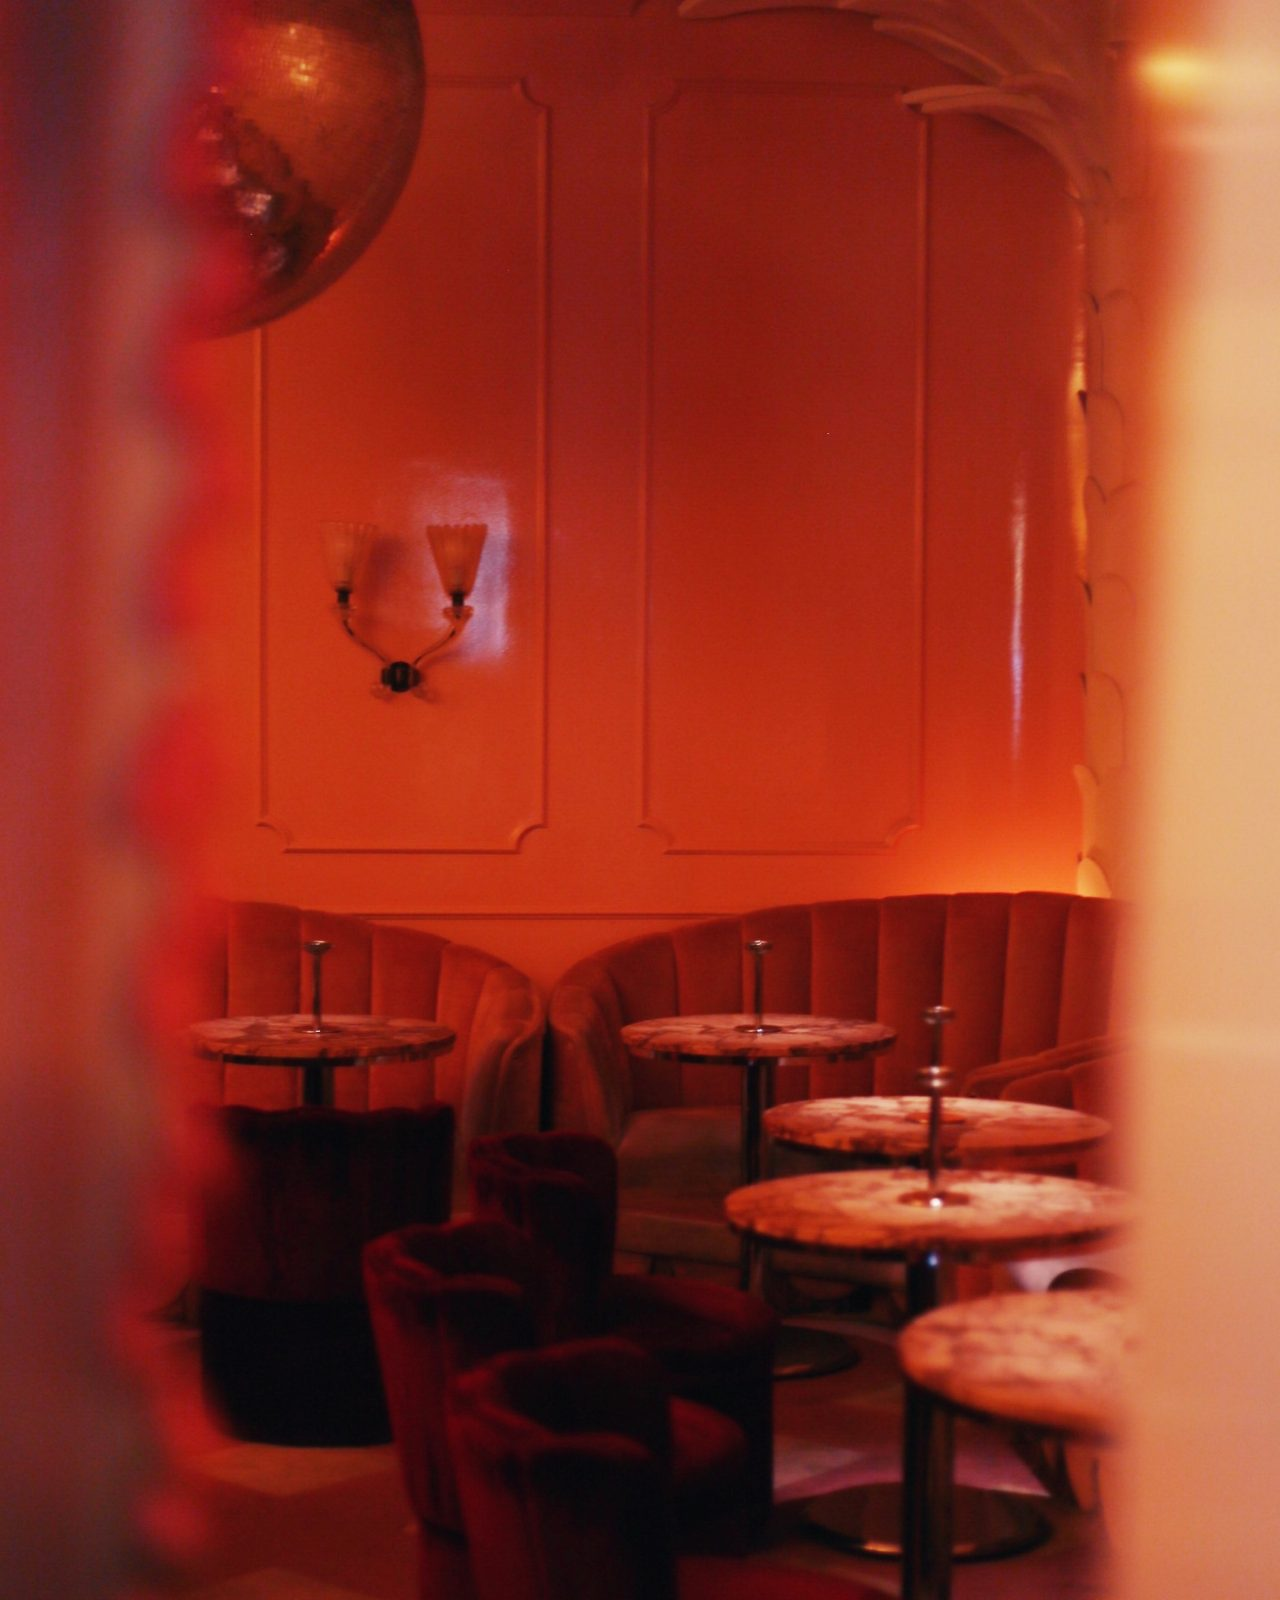 Inside of a Montreal speakeasy with a red hue